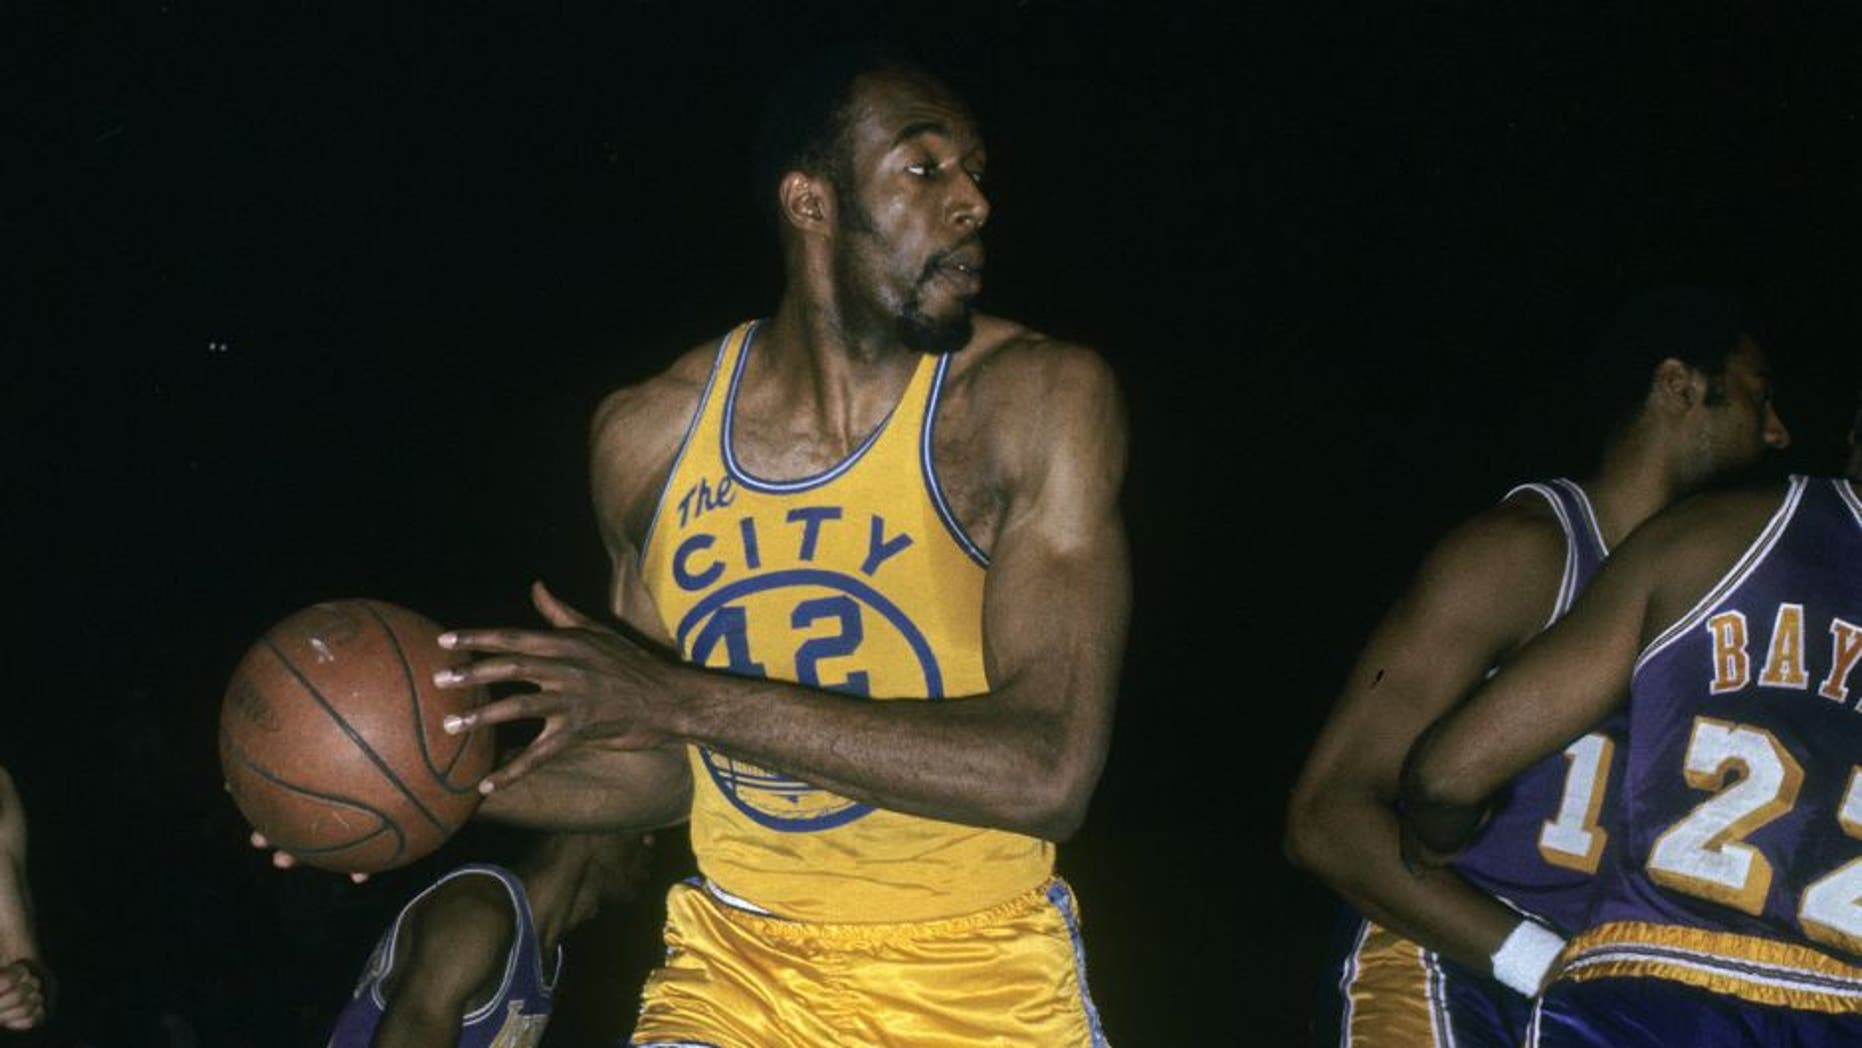 SAN FRANCISCO, CA - CIRCA 1960's: Nate Thurmond #42 of the San Francisco Warriors in action pulling down a rebound against the Los Angeles Lakers during an late circa 1960's NBA basketball game at the Cow Palace in San Francisco, California. Thurmond played for the Warriors 1963-74. (Photo by Focus on Sport/Getty Images)